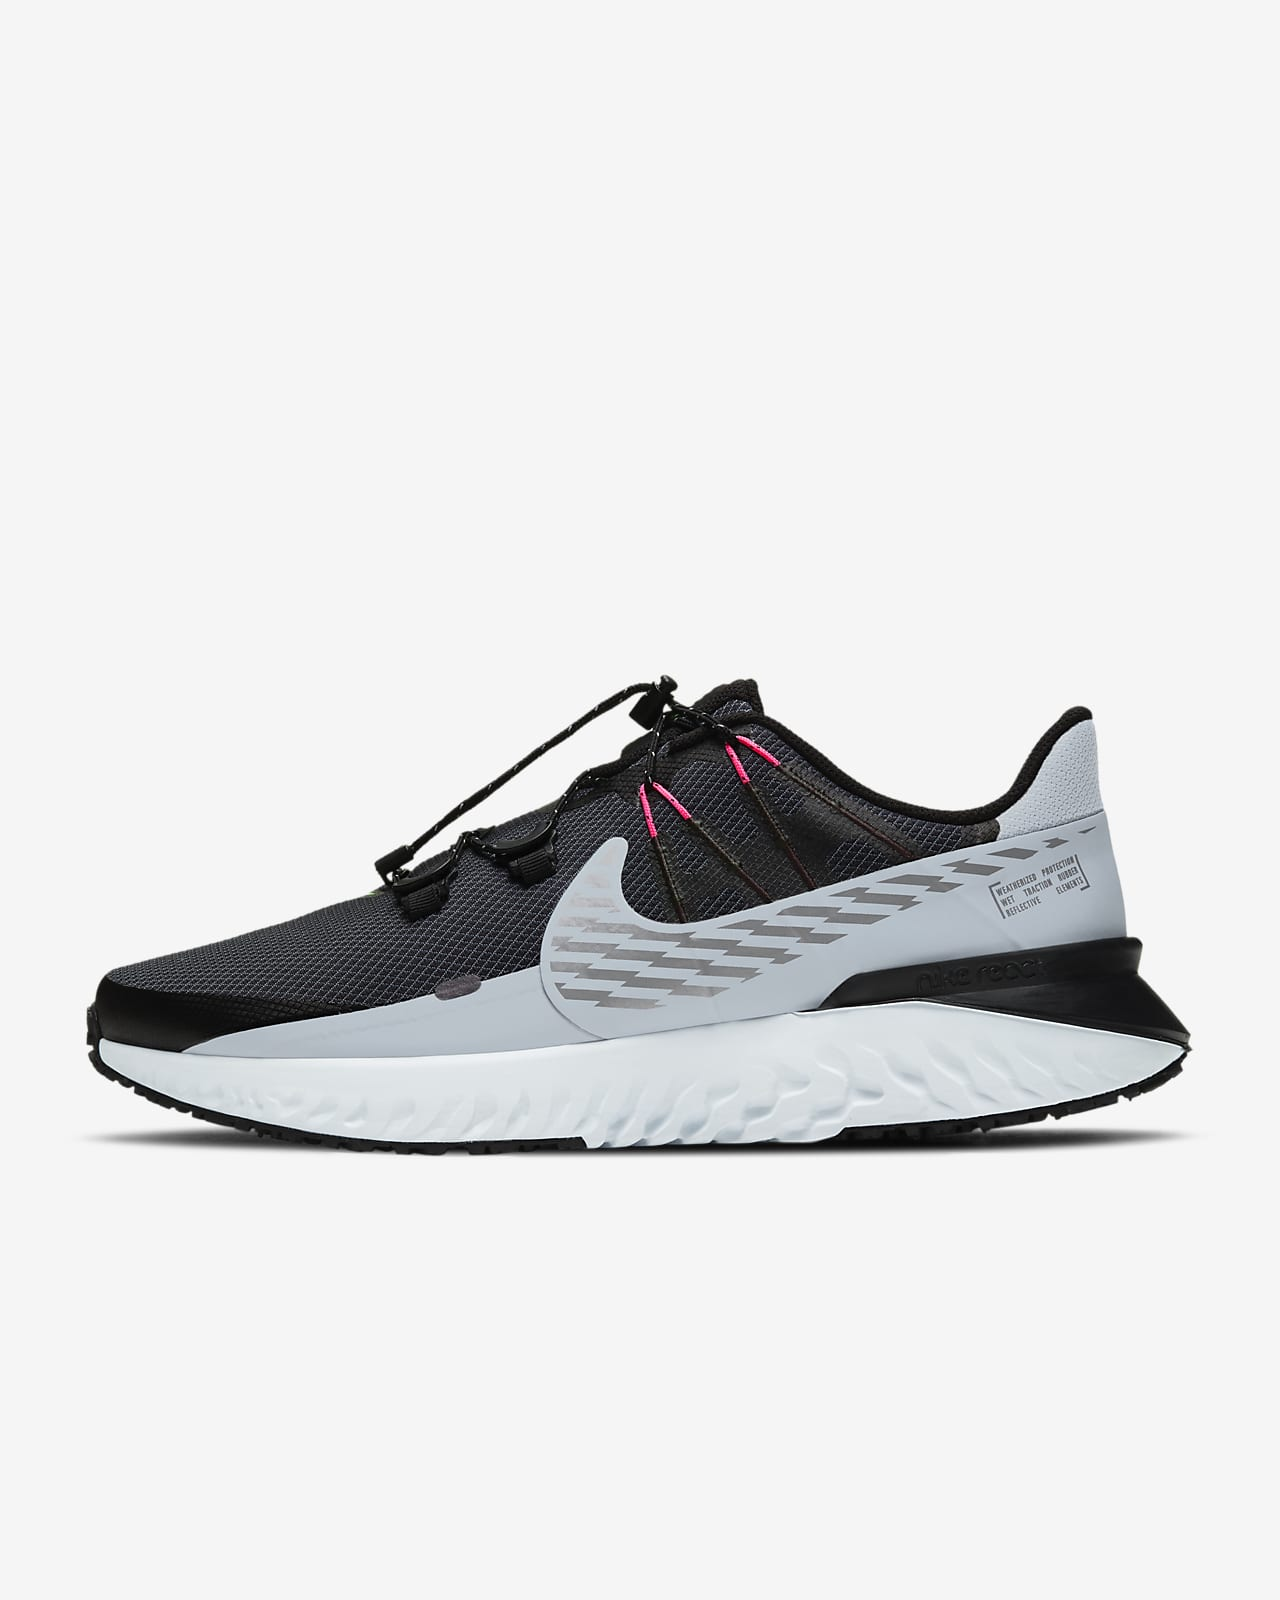 Nike Legend React 3 Shield Men's Running Shoe